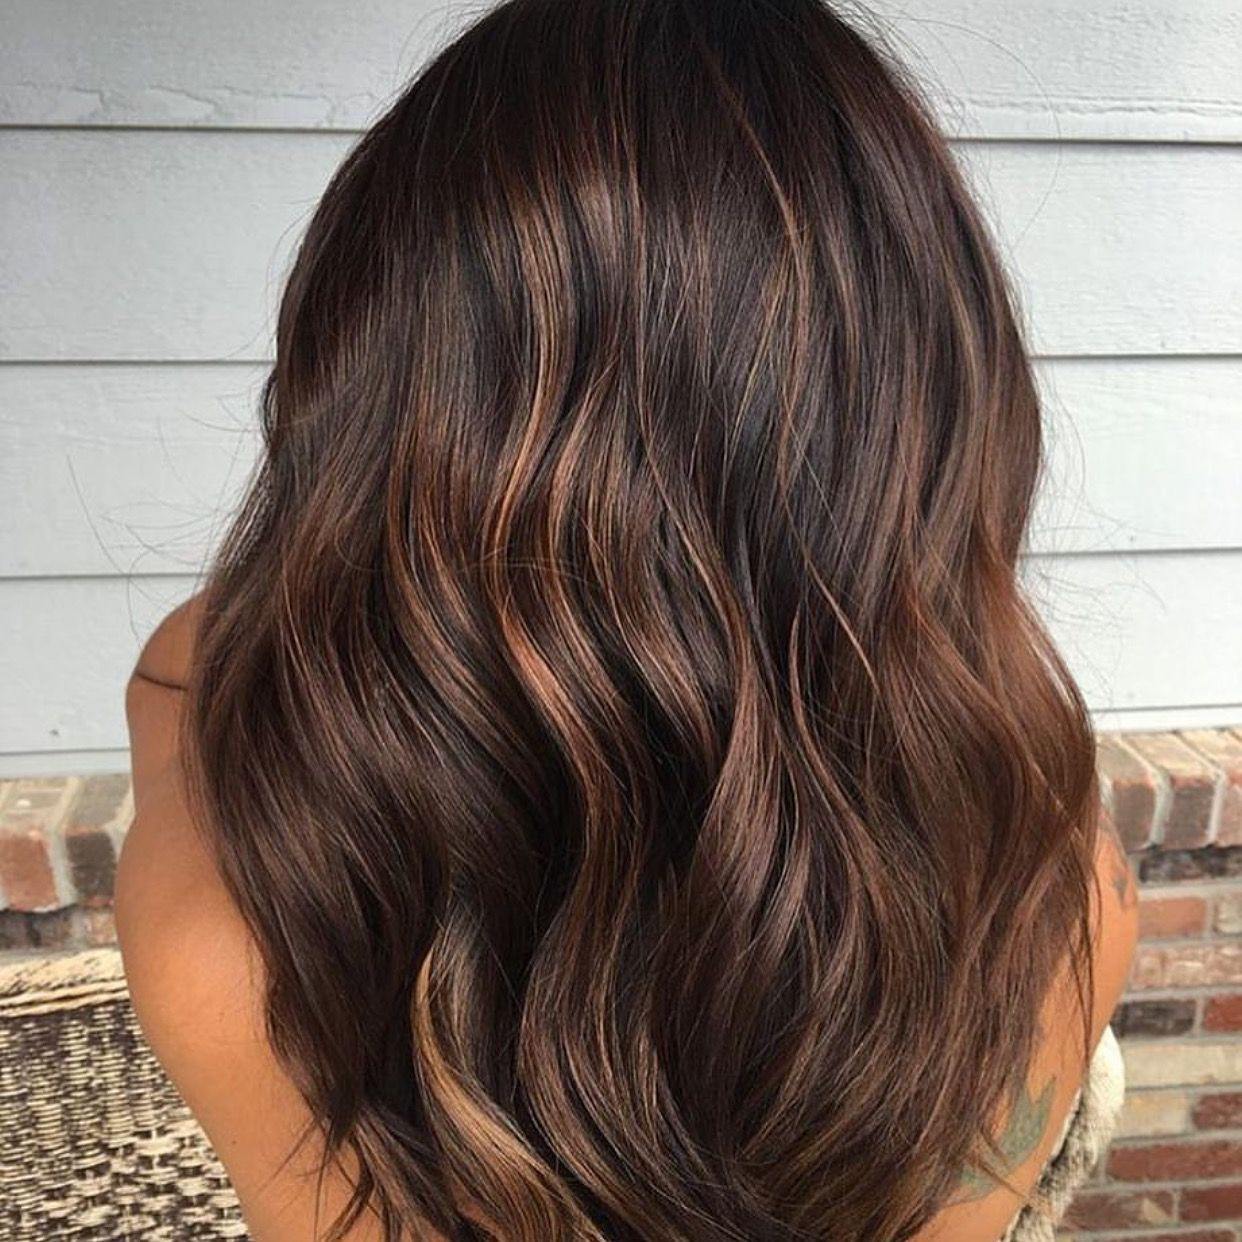 Chocolate Babylights  Hair2019  Iluminacion de cabello